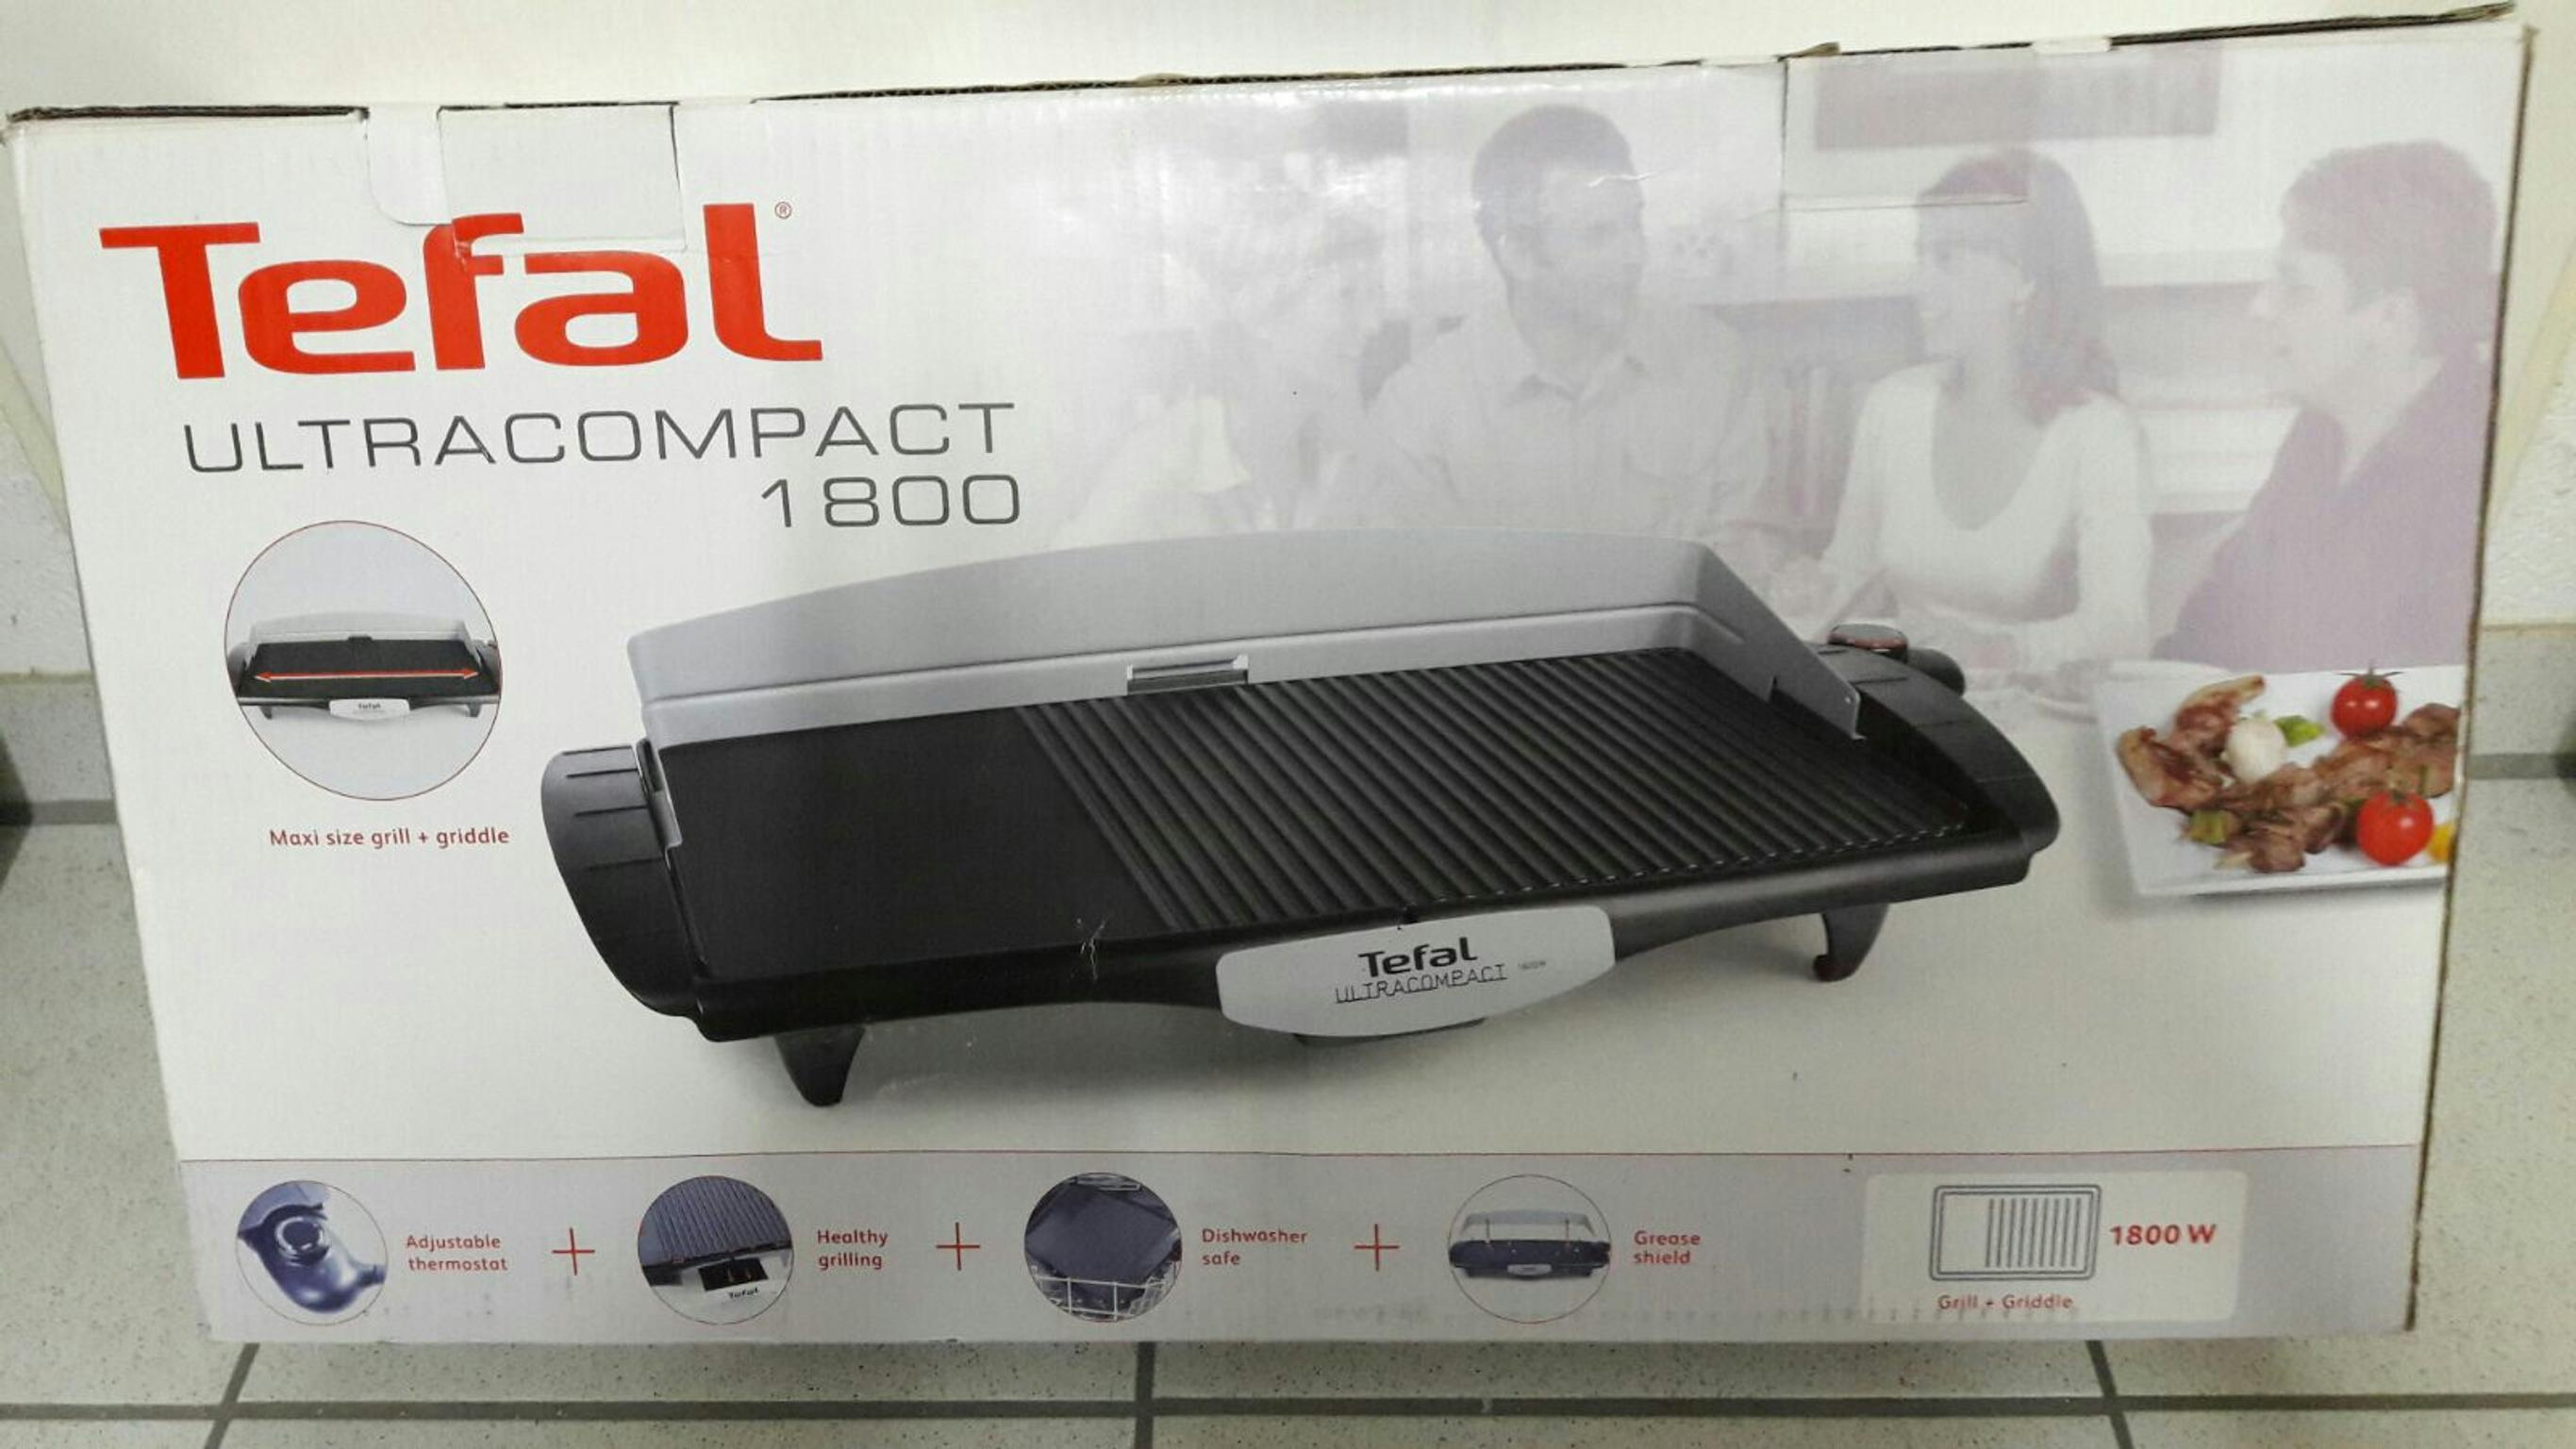 Tefal Tischgrill elektrisch in 82140 Olching for 1200